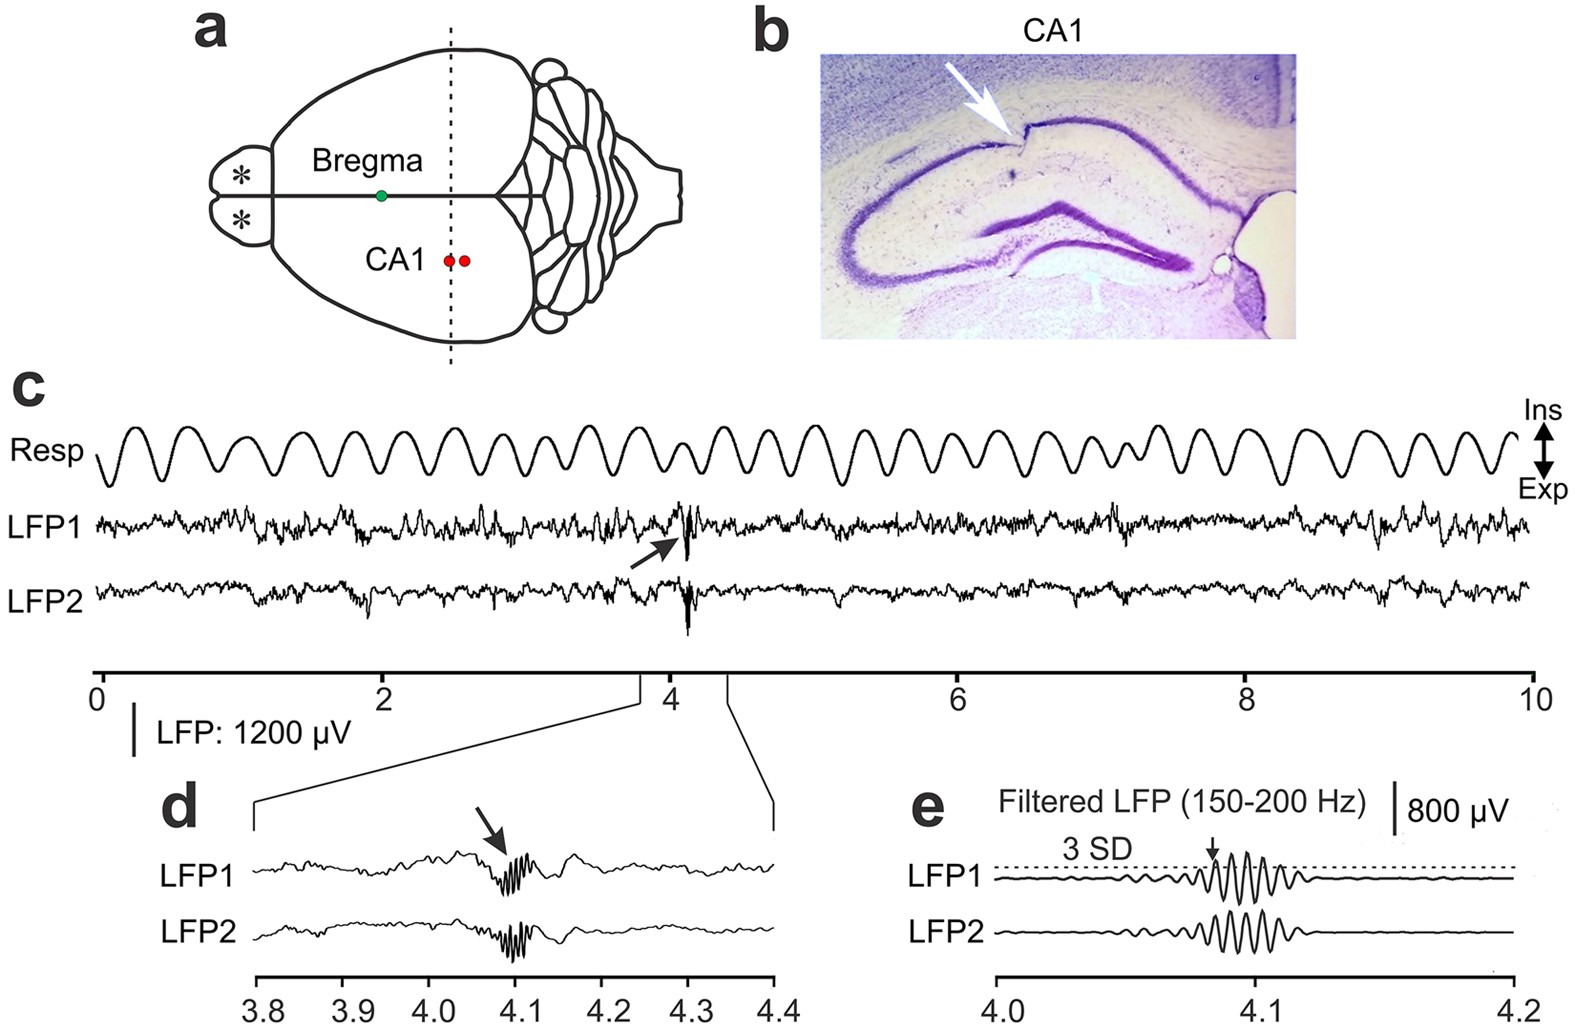 Hippocampal Sharp Wave Ripples In Awake Mice Are Entrained By Incandescent Light Bulb Diagram Shows 11 Parts Respiration Scientific Reports